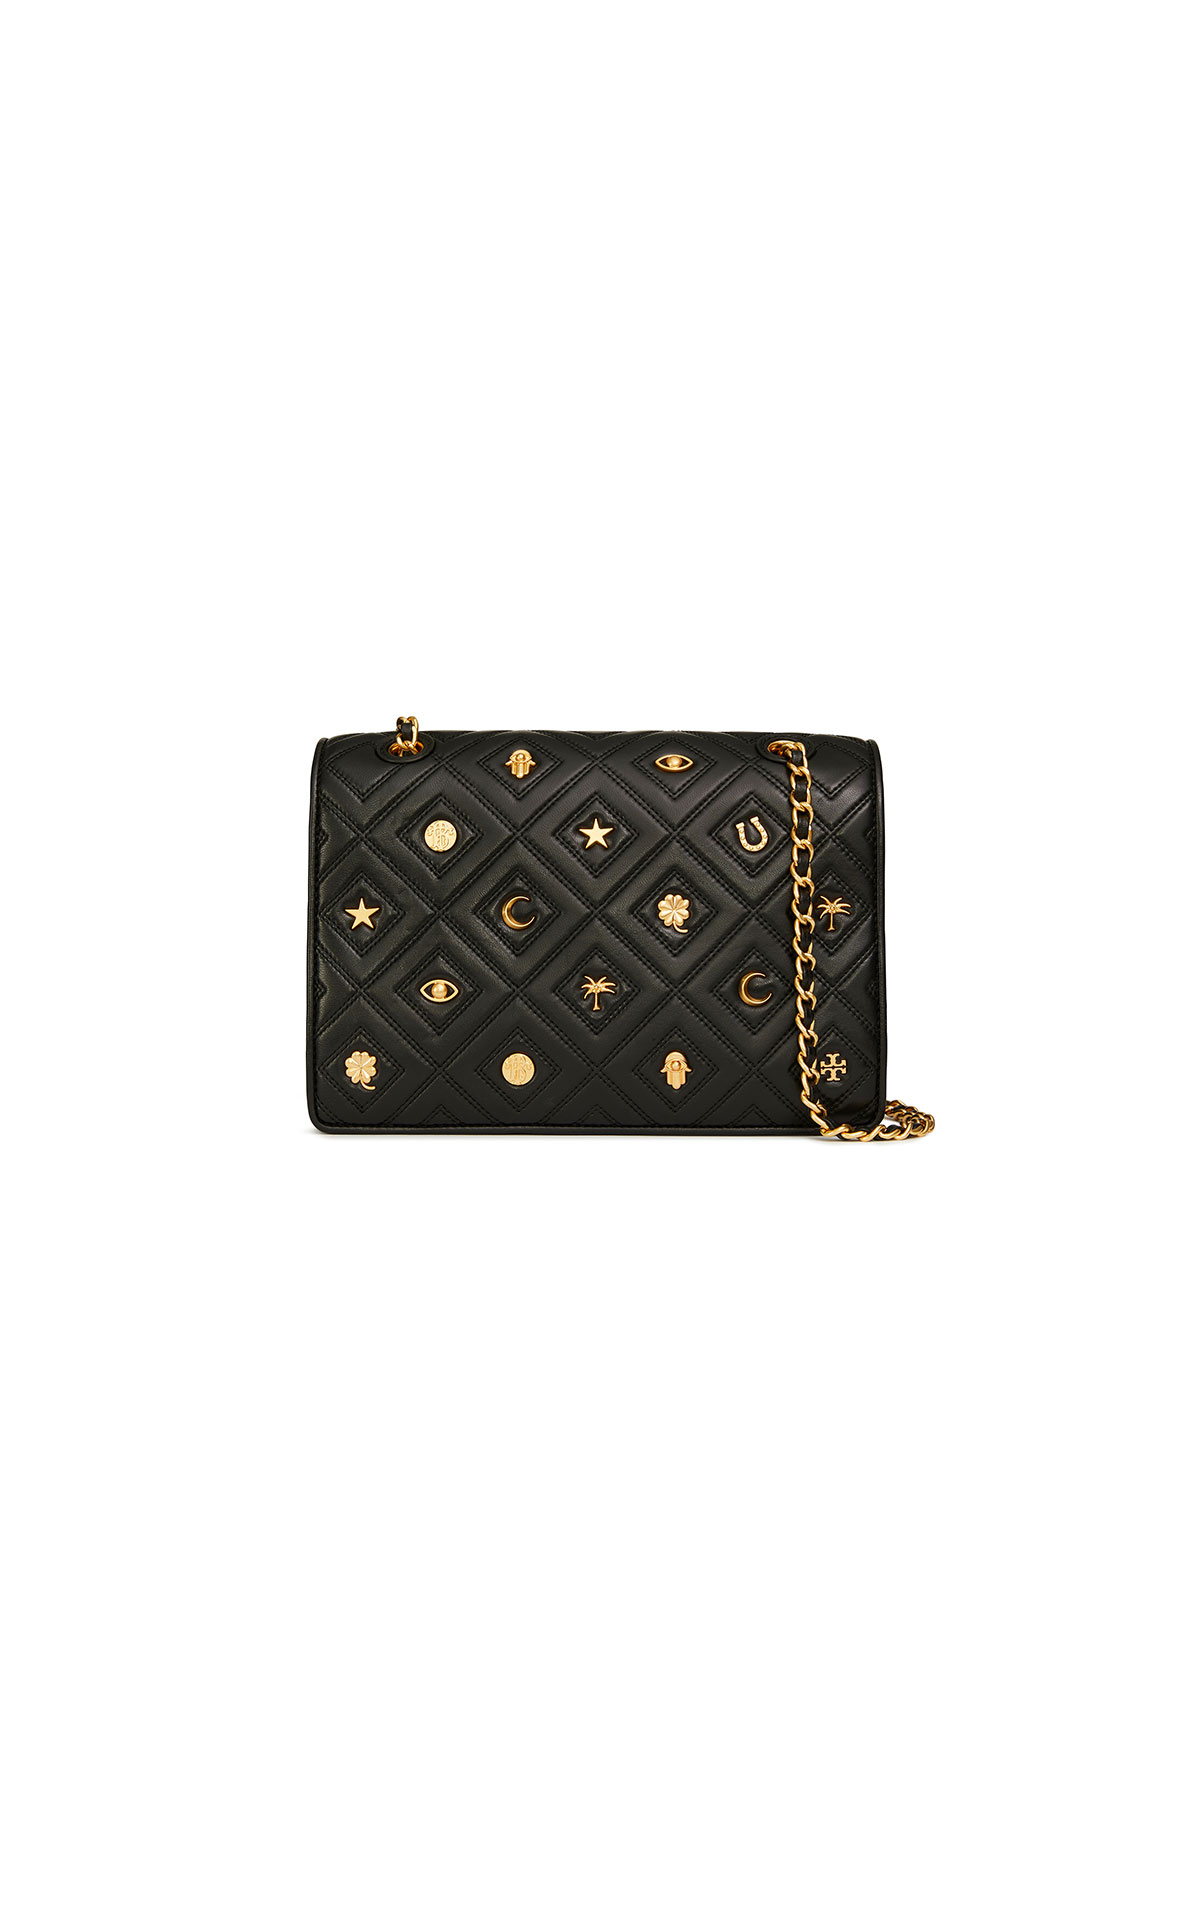 Tory Burch Fleming charm large convertible shoulder bag in black at The Bicester Village Shopping Collection